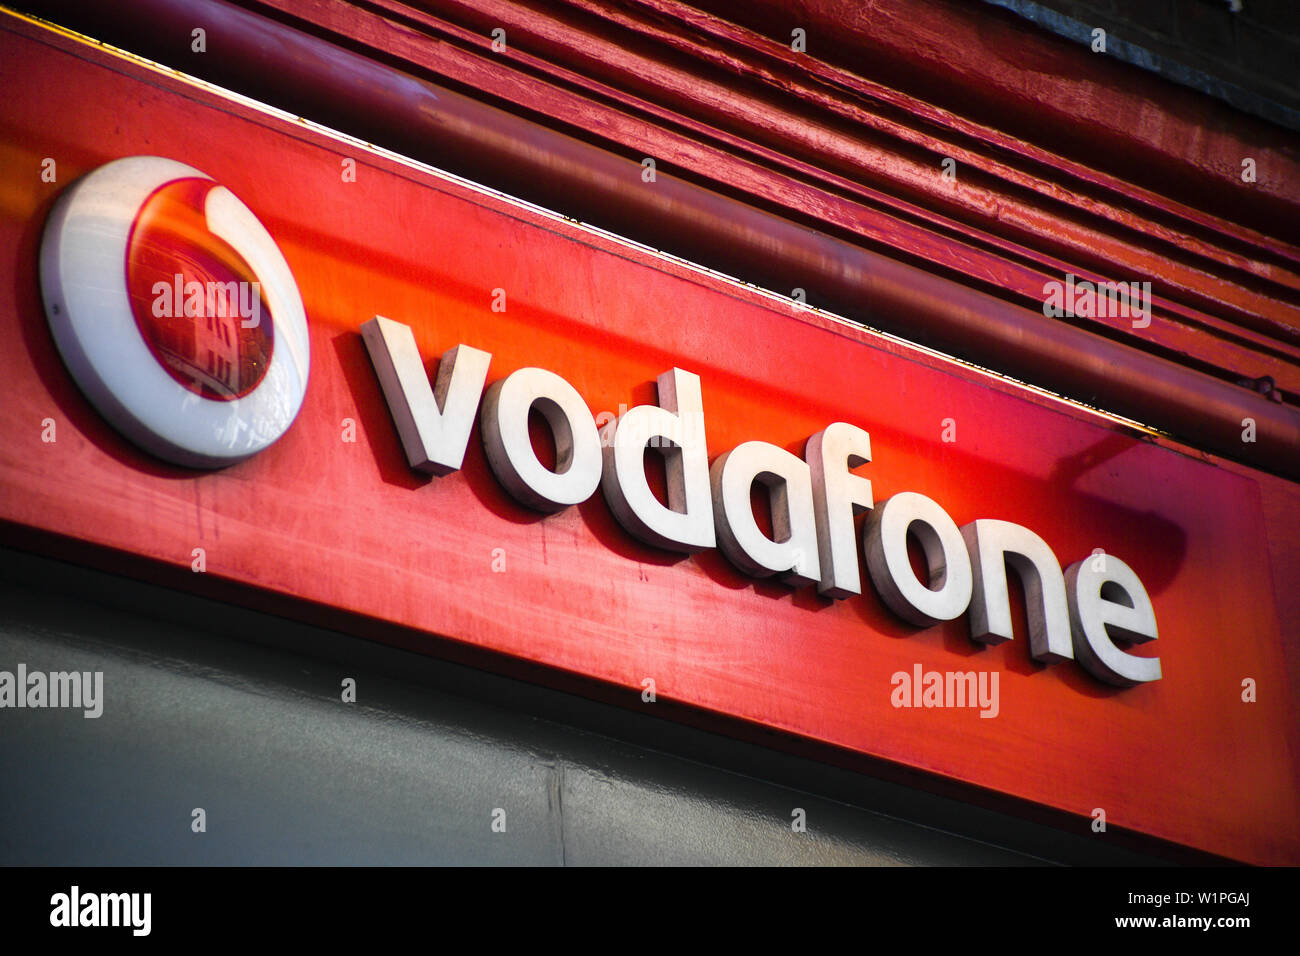 Vodafone Uk Stock Photos & Vodafone Uk Stock Images - Alamy